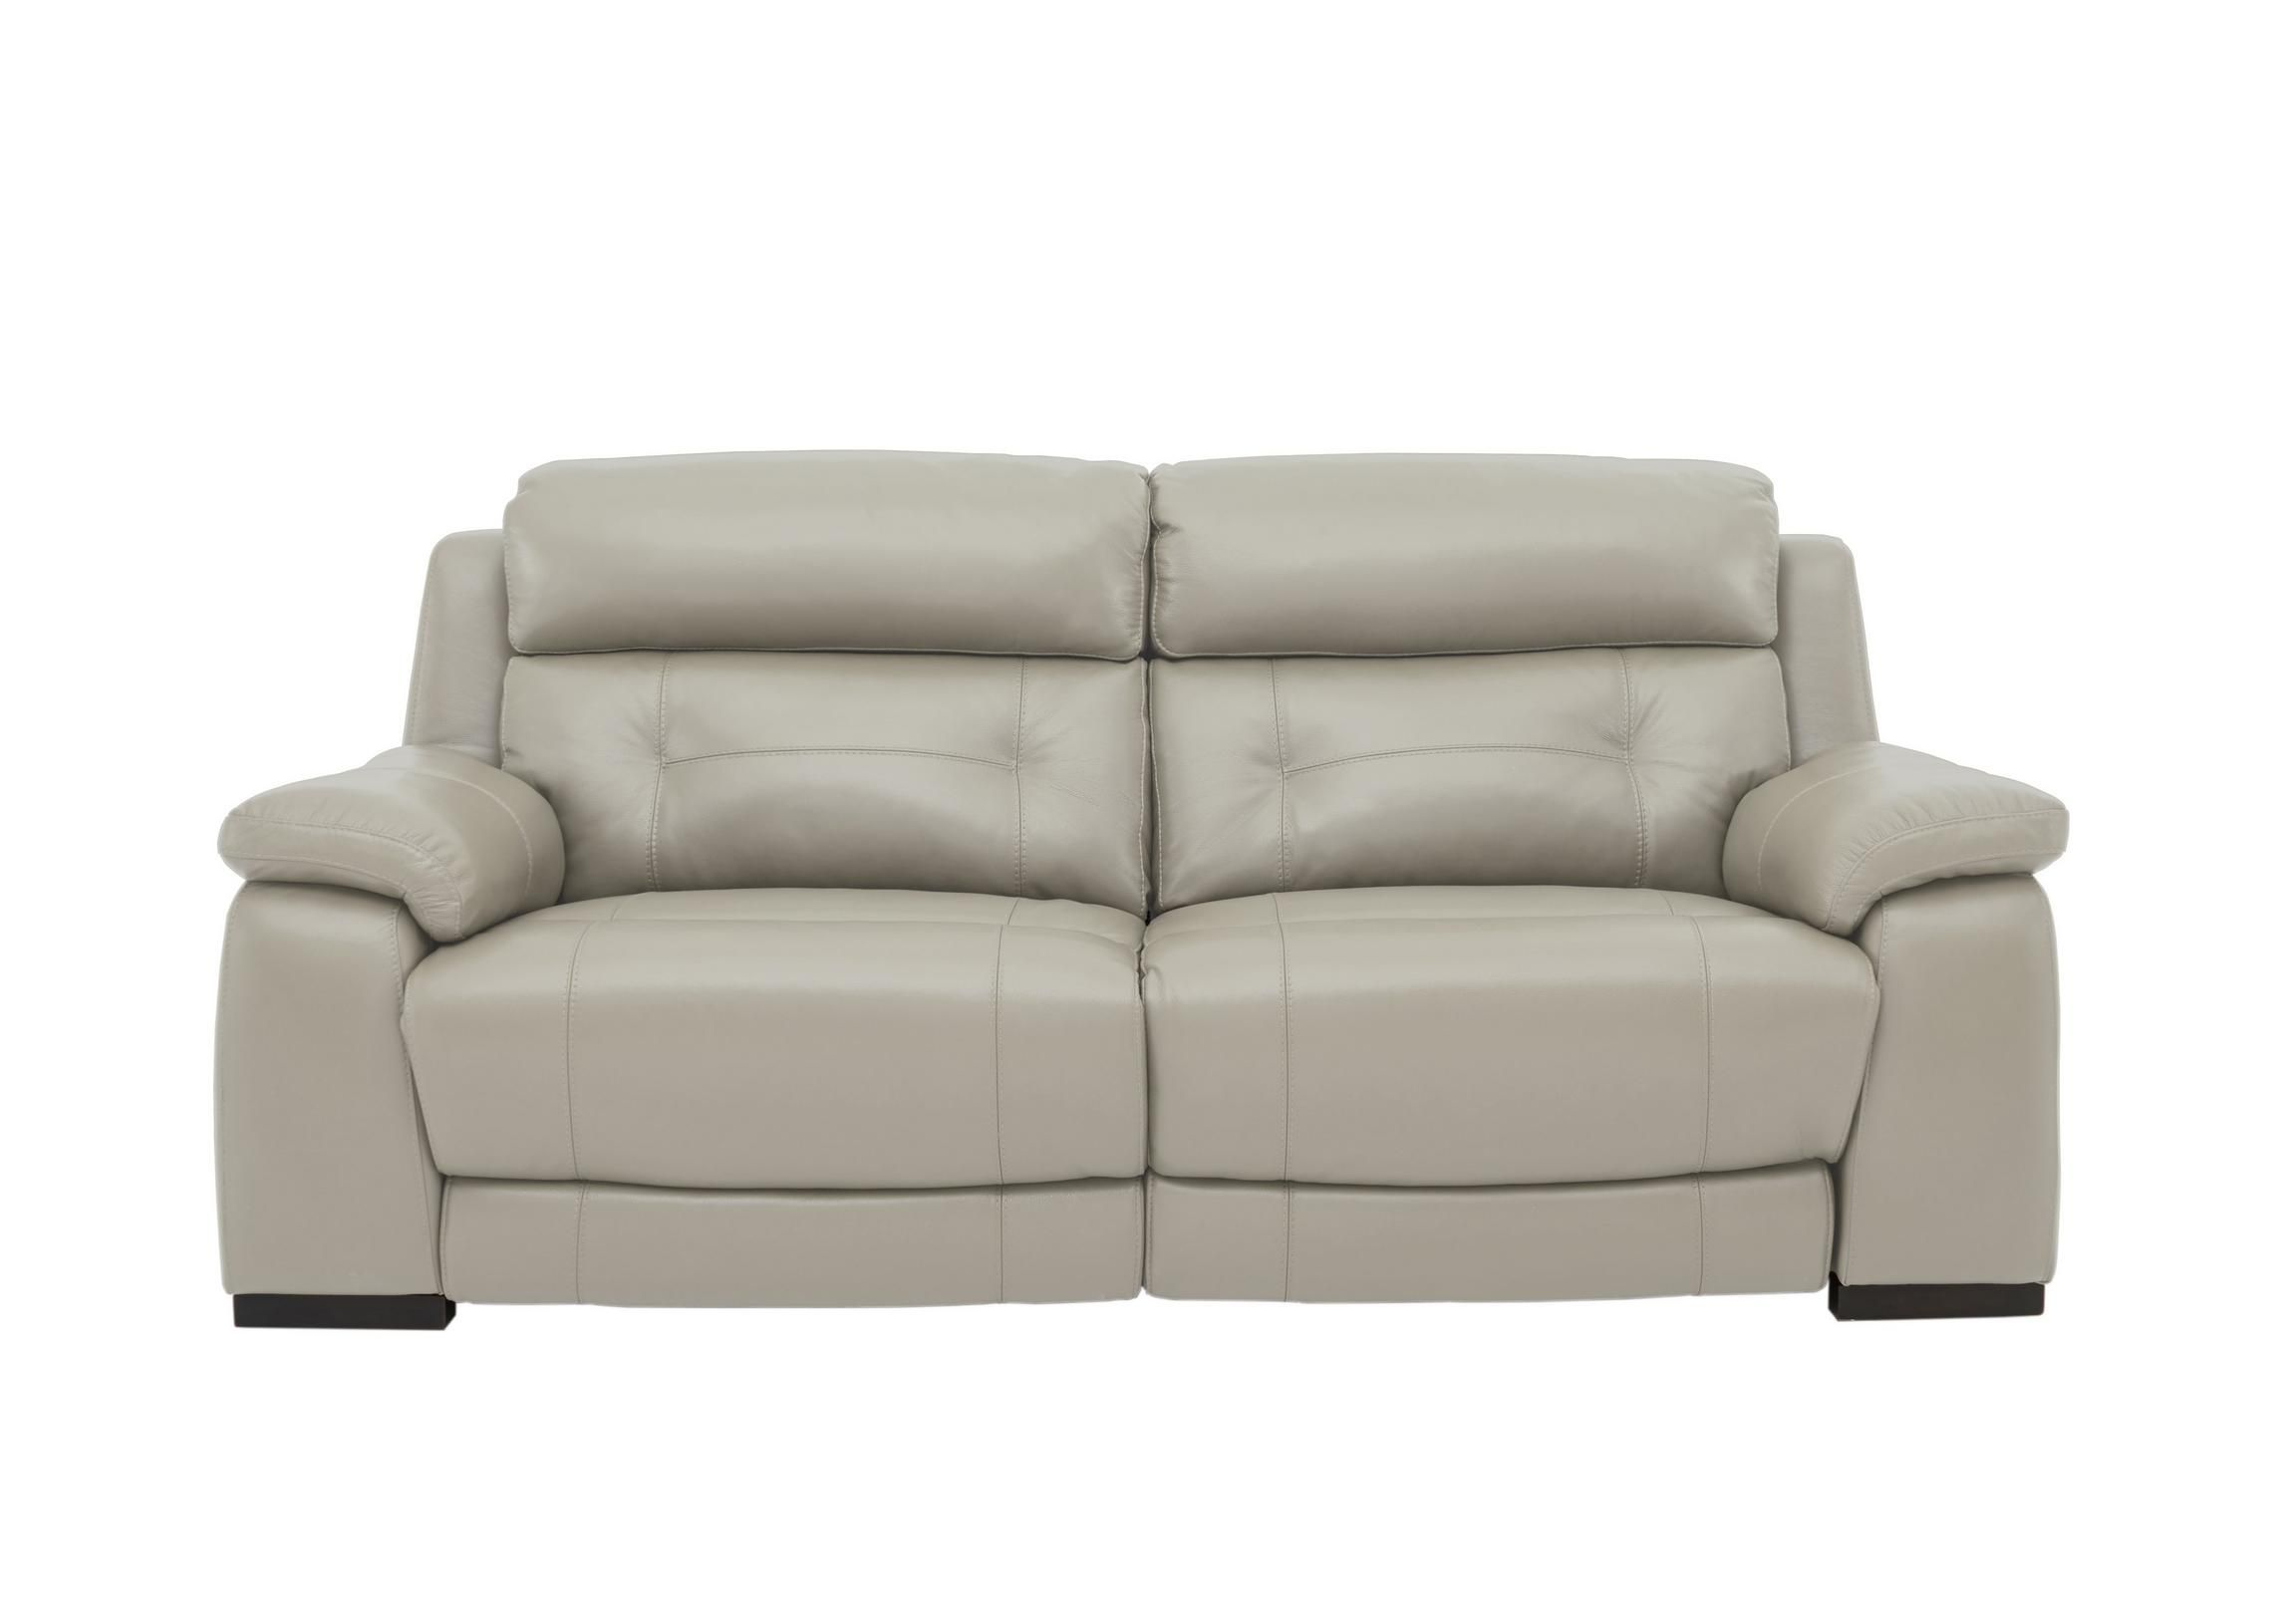 Ease 3 Seater Leather Recliner Sofa in 2018   Home Improvements ...